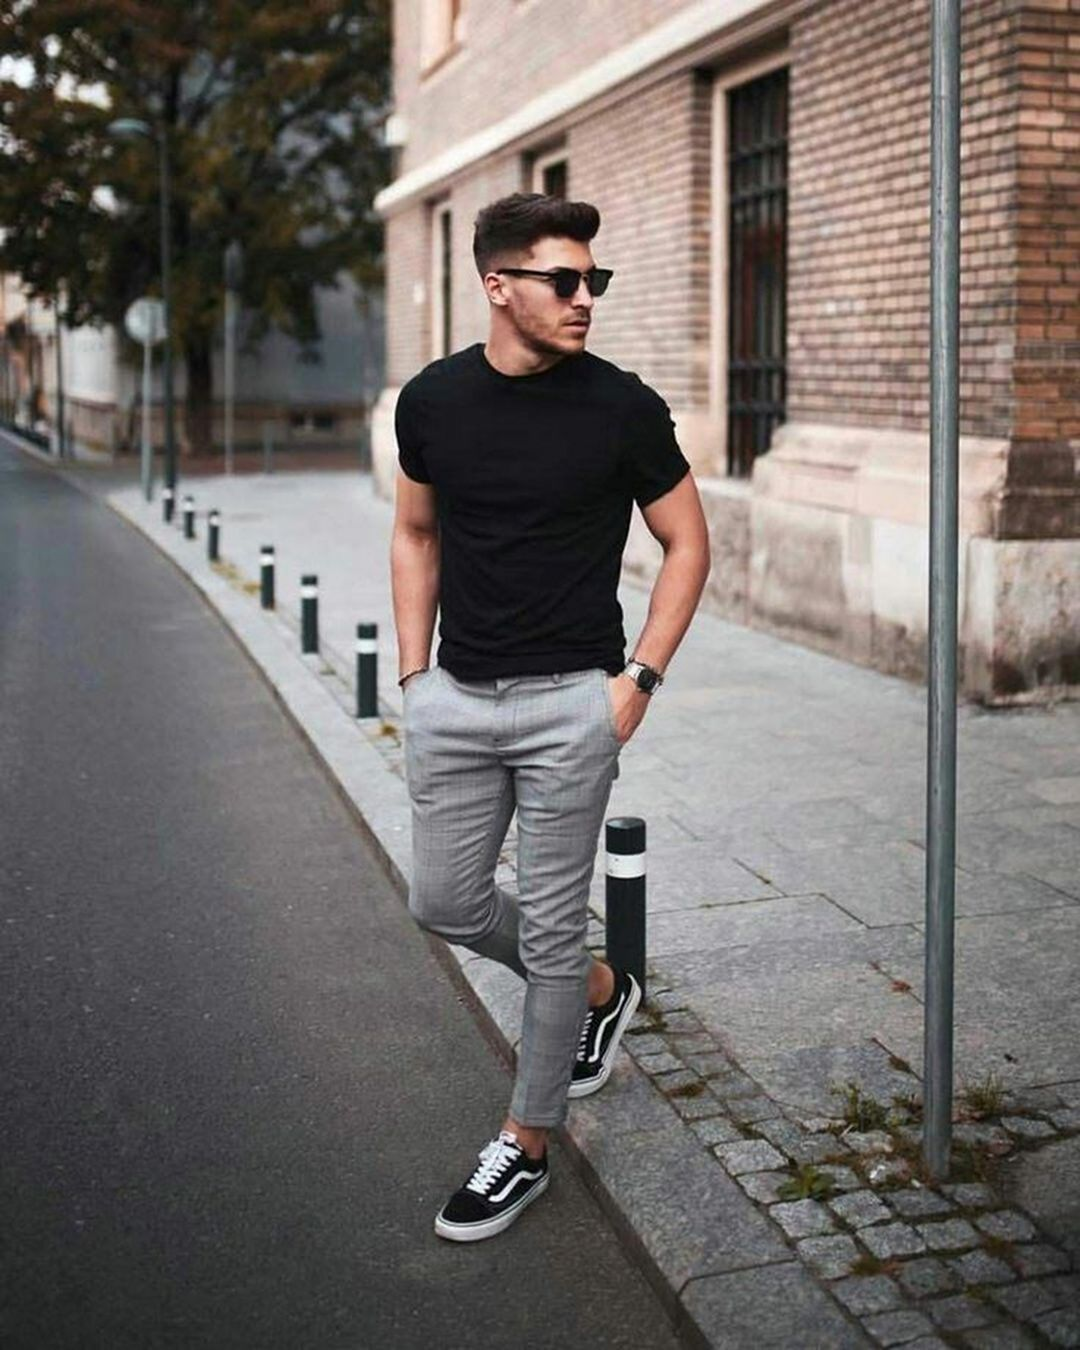 15 Fantastic OOTD Men's Outfit Ideas For Your Cool Appearance As a man, of cours...